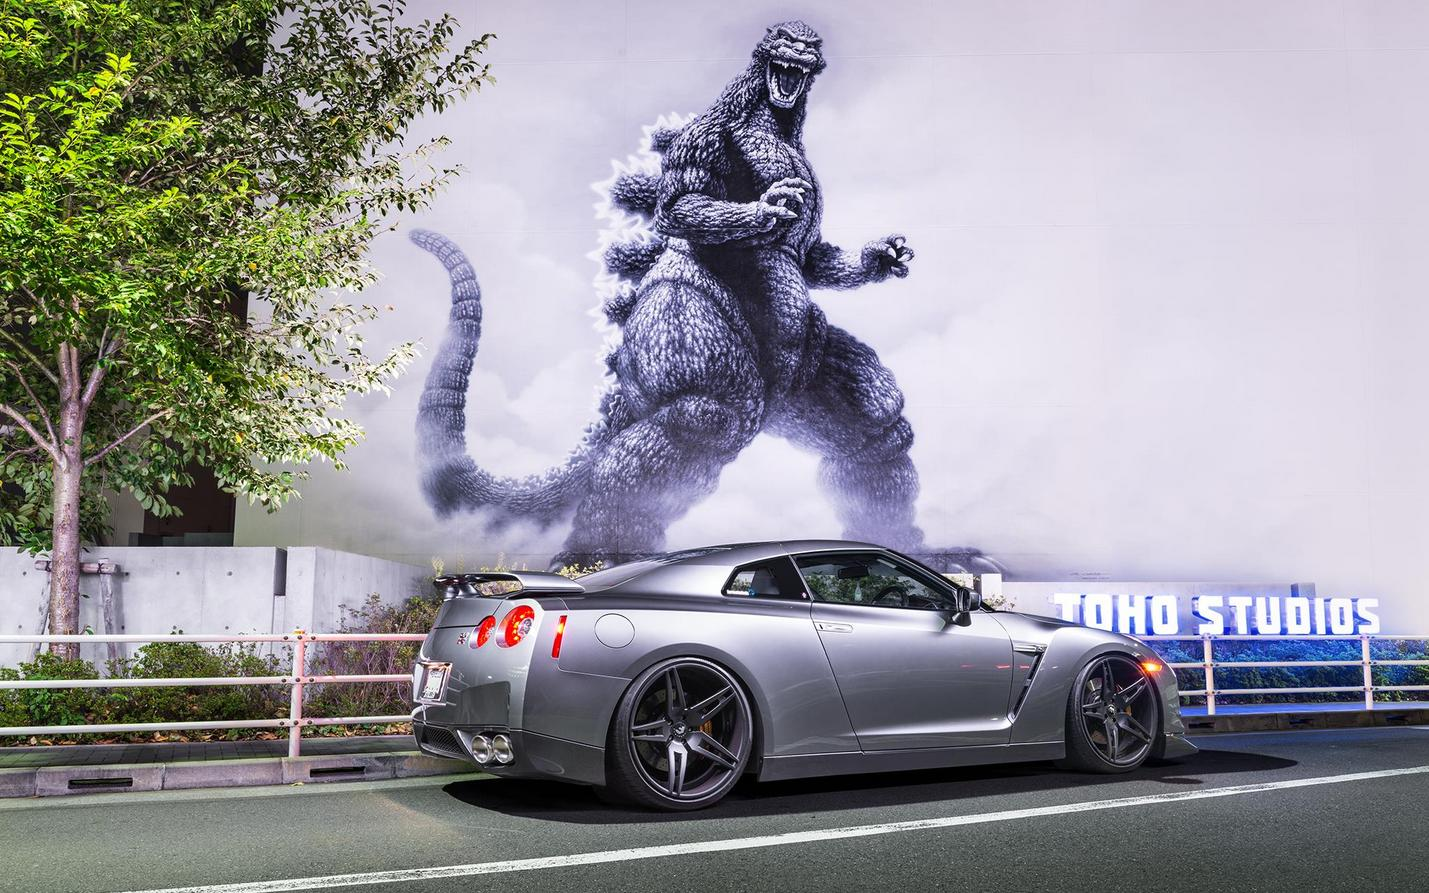 The performance car Nissan Skyline GT-R nicknamed